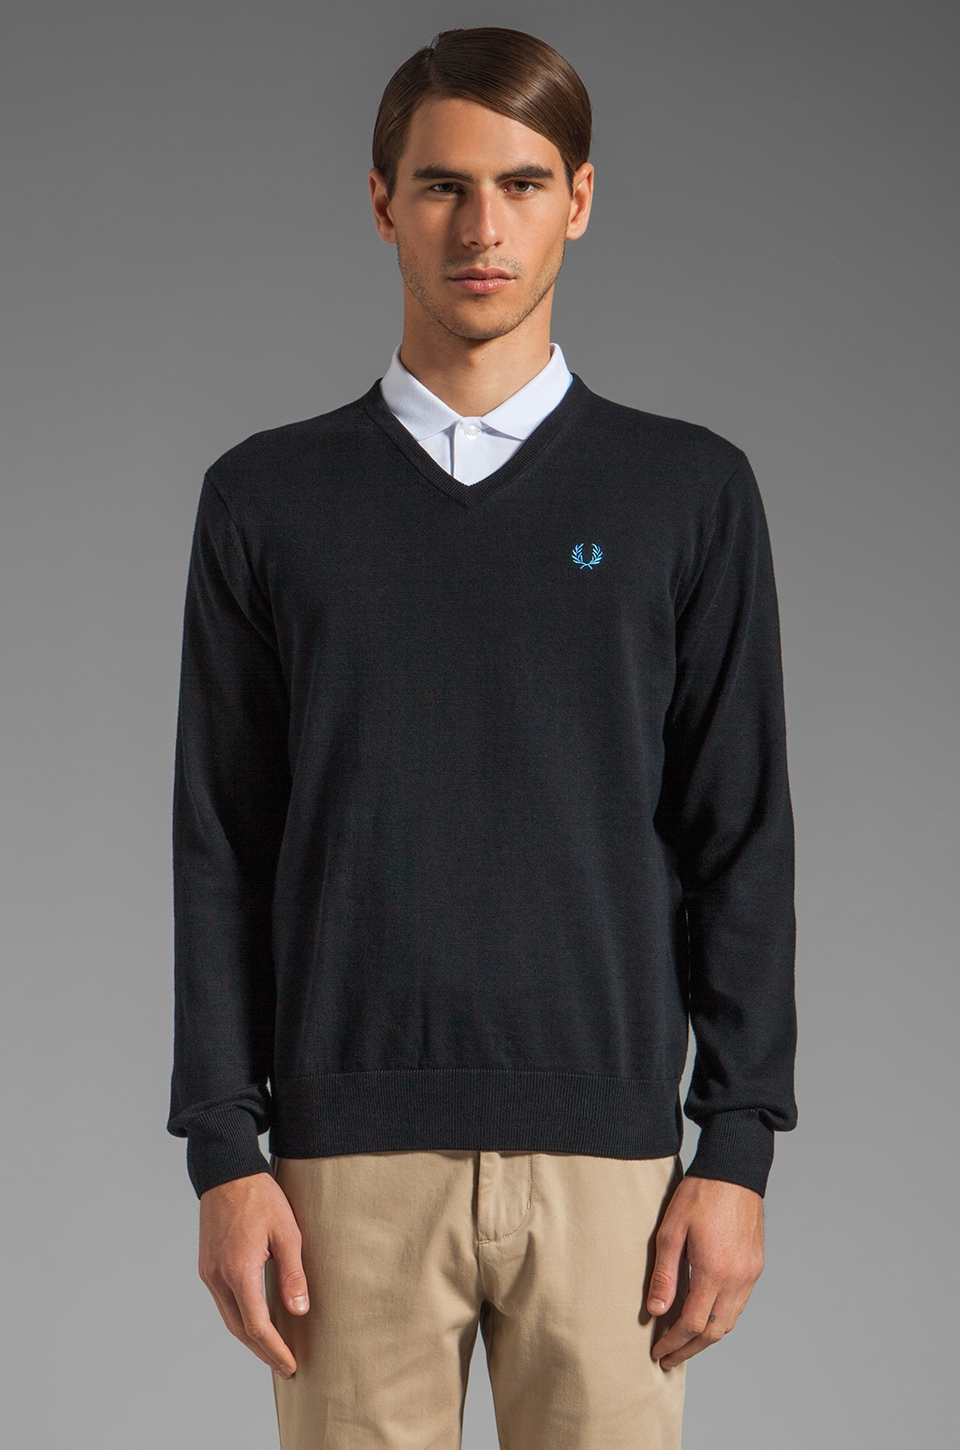 Fred Perry Classic Tipped V-Neck Sweater in Navy